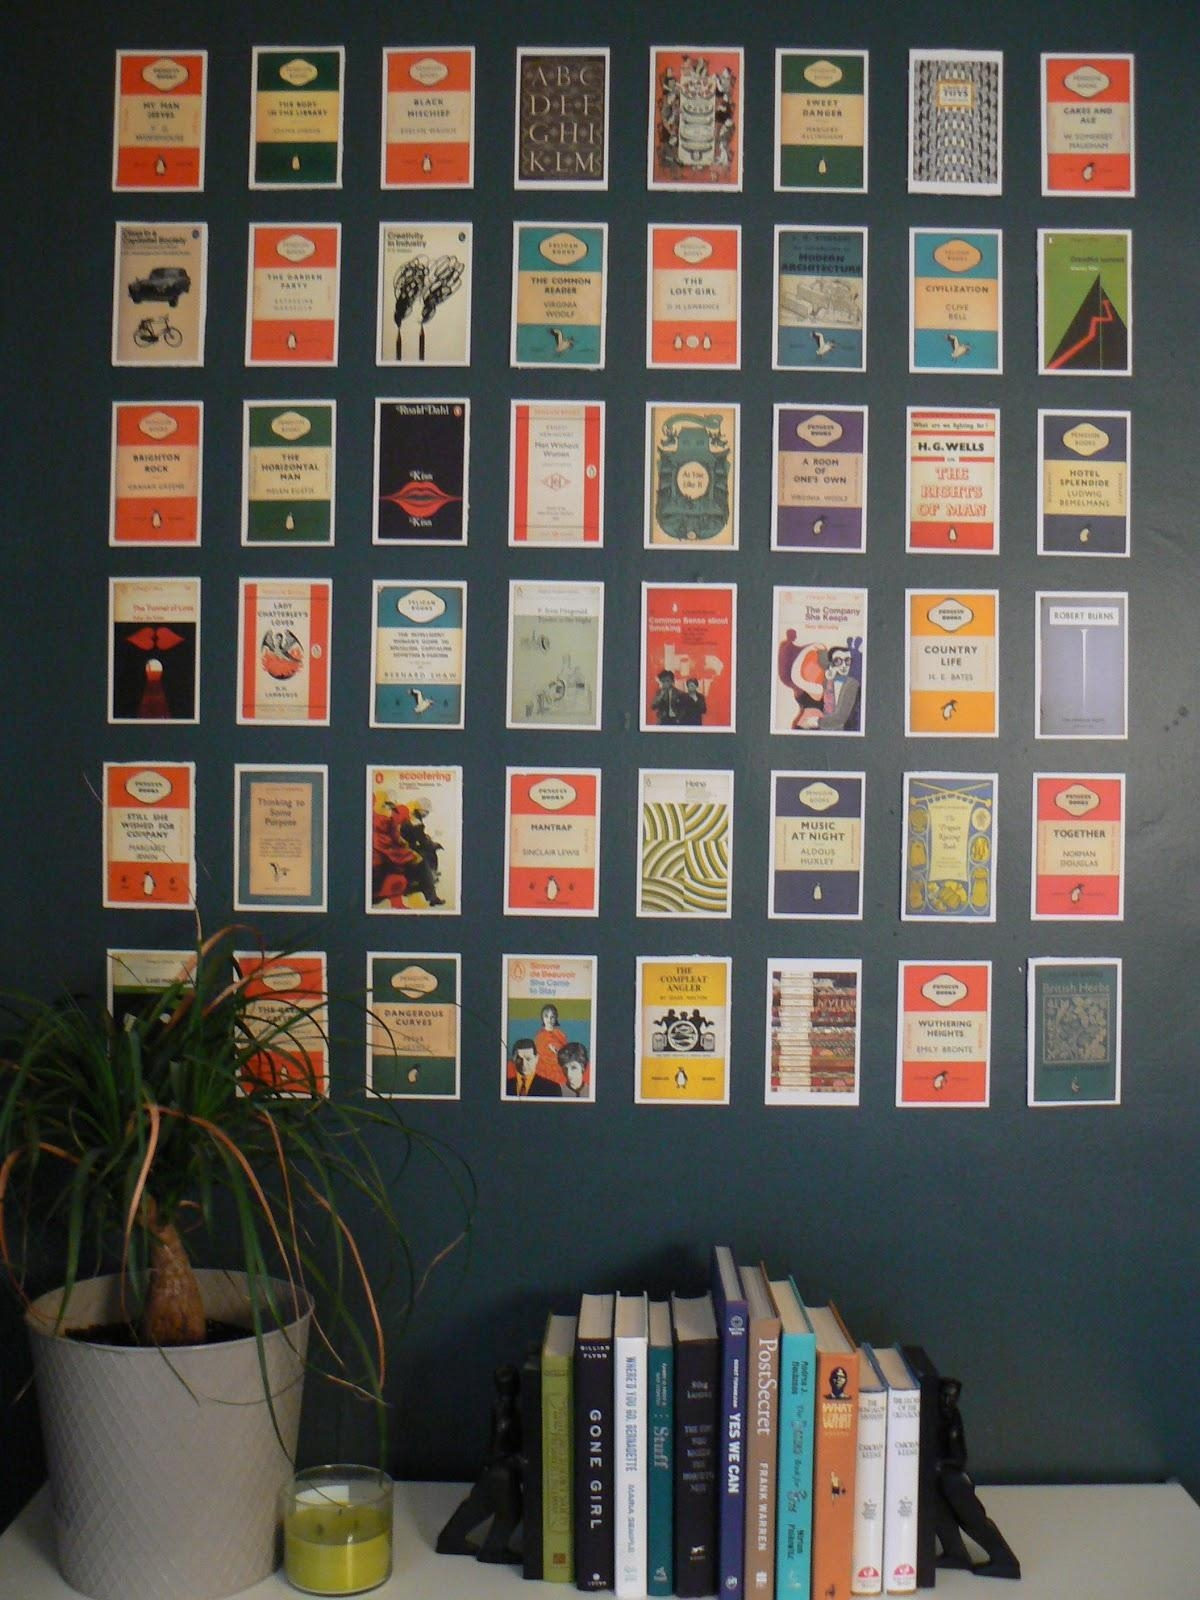 Diy Postcard Wall Art | Little House Design Intended For Penguin Books Wall Art (Photo 1 of 20)